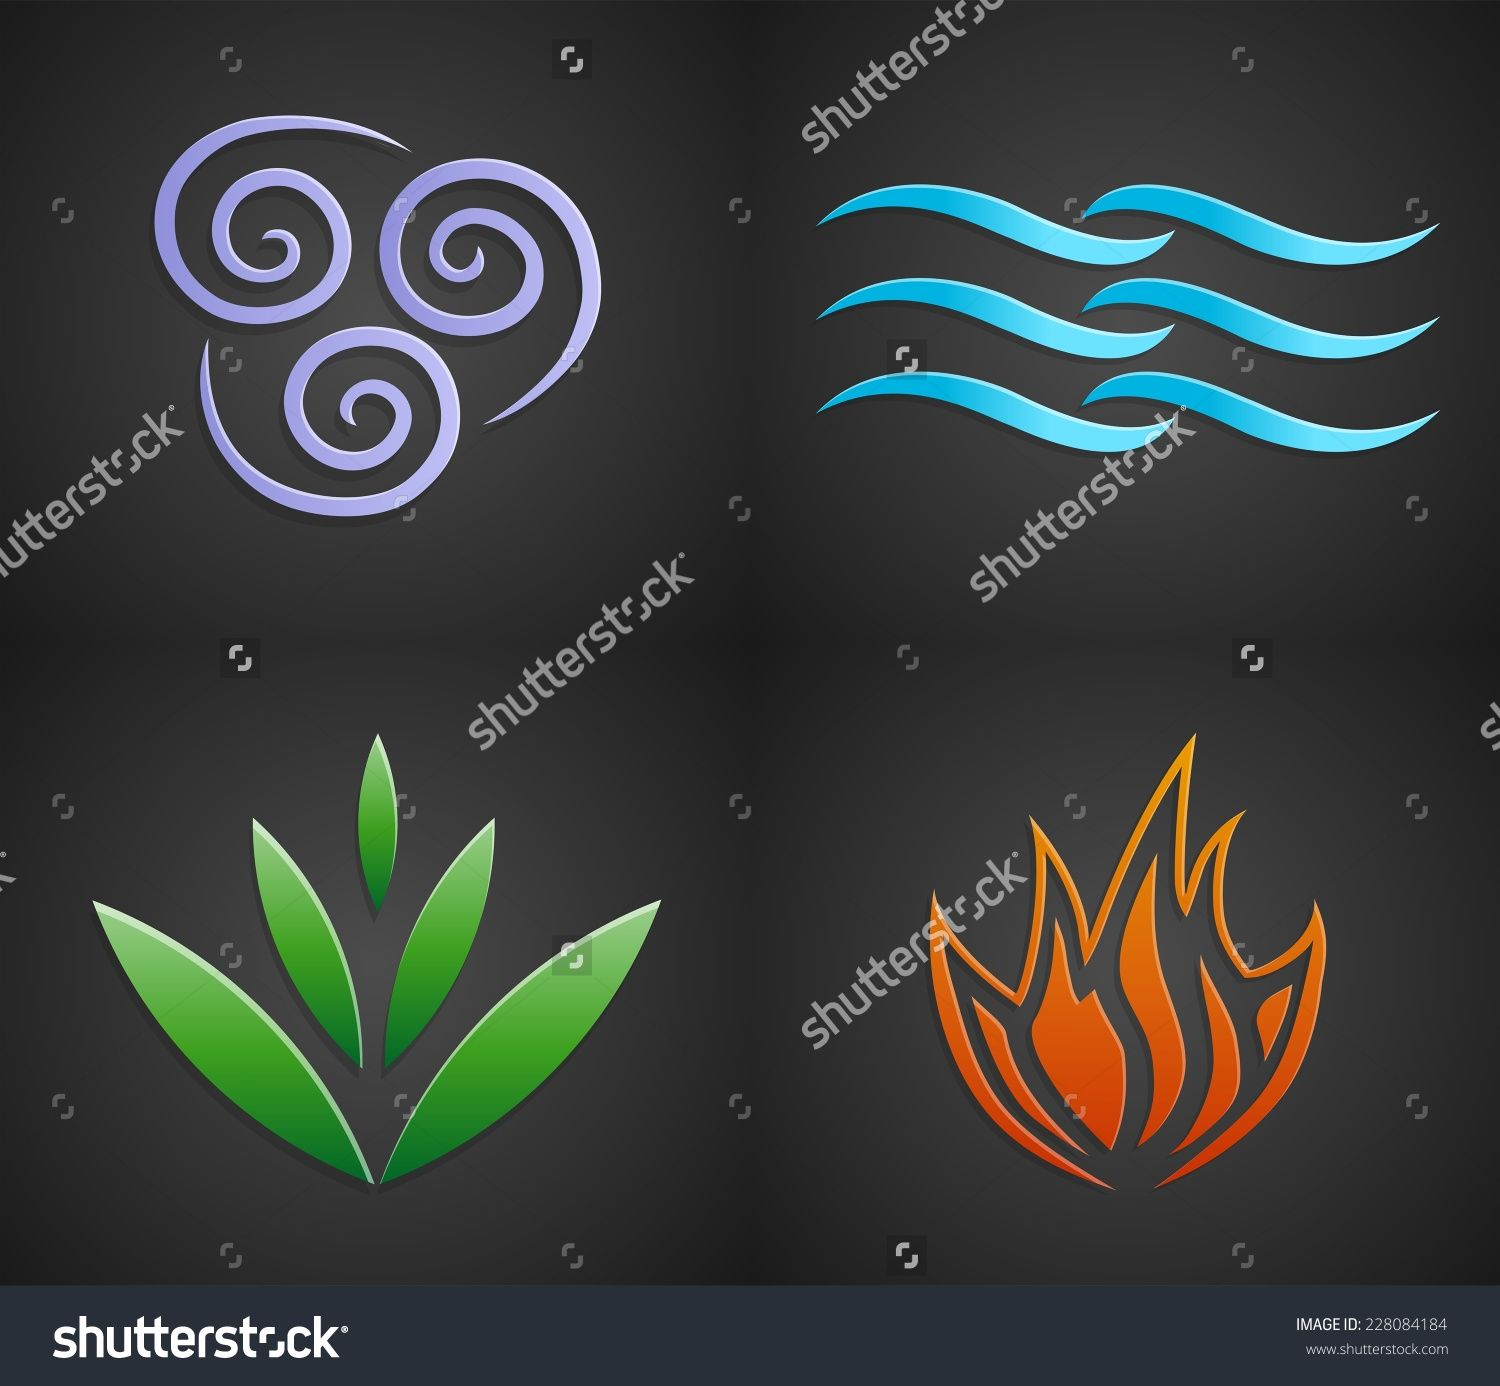 Save to a lightbox home ideas pinterest lightbox symbols and vector symbols of four elements of nature air water land fire biocorpaavc Gallery